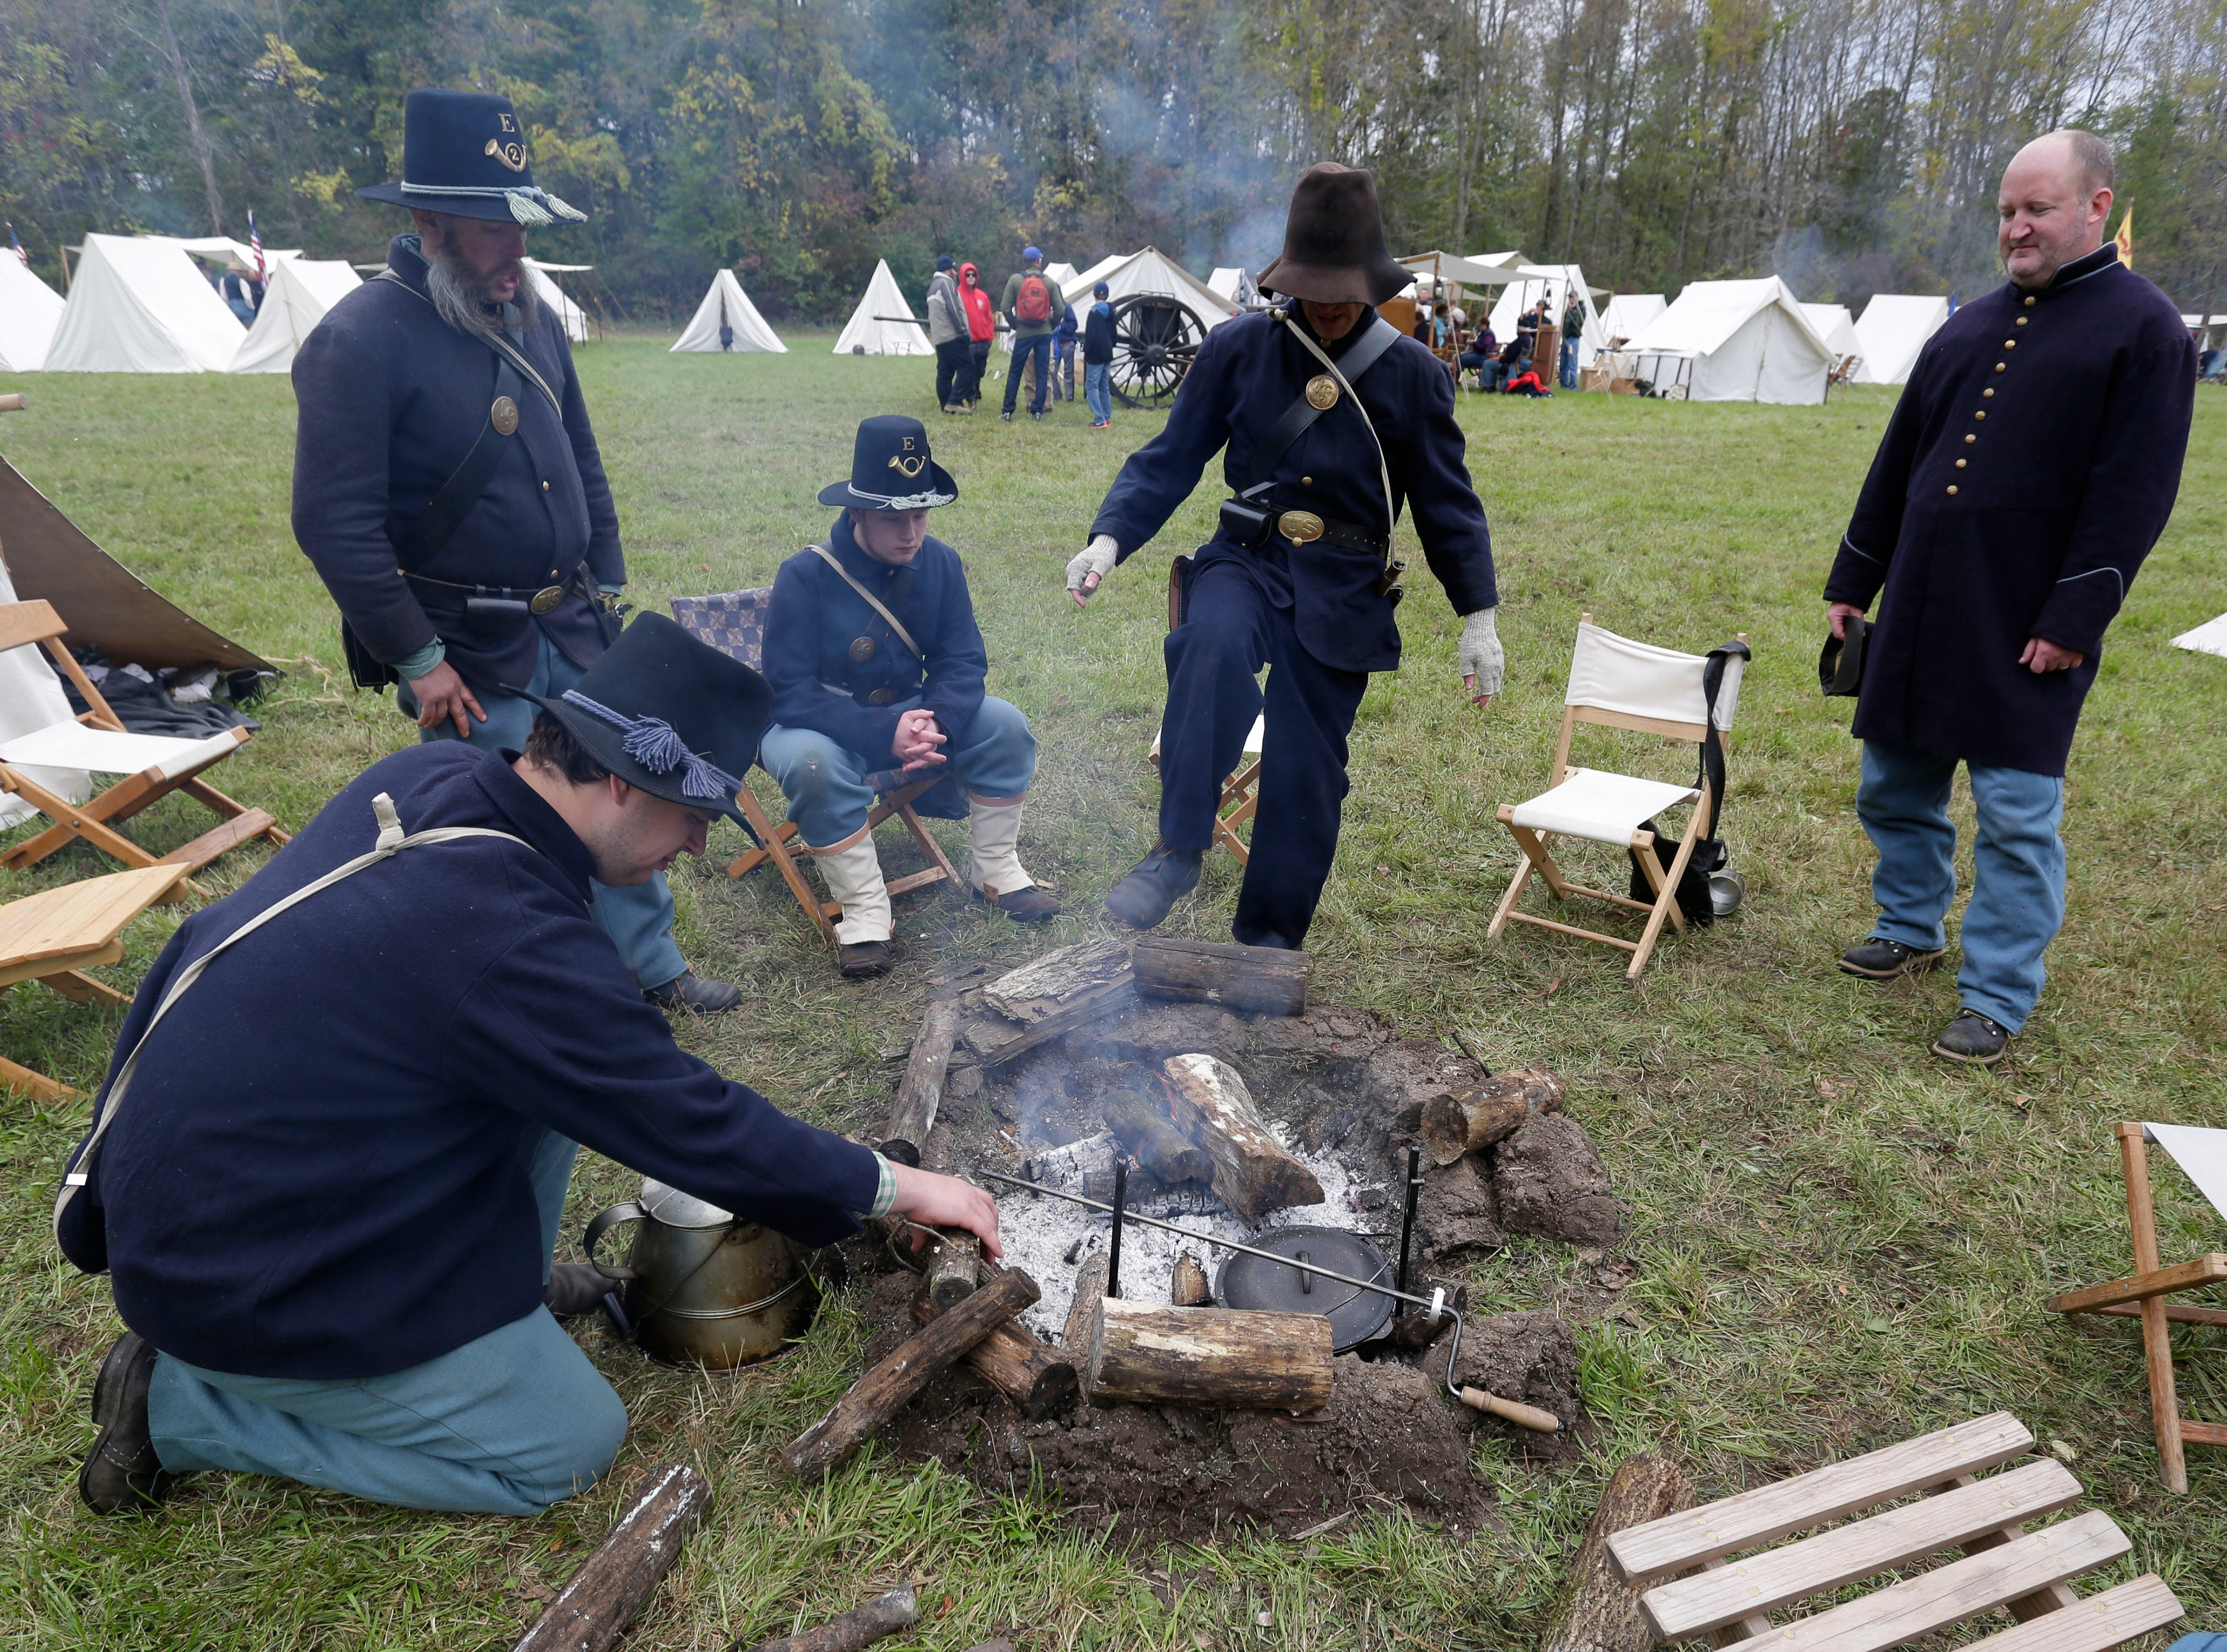 Union soldiers relax around camp during the Civil War Weekend at the Wade House, Saturday September 29, 2018, in Greenbush, Wis.